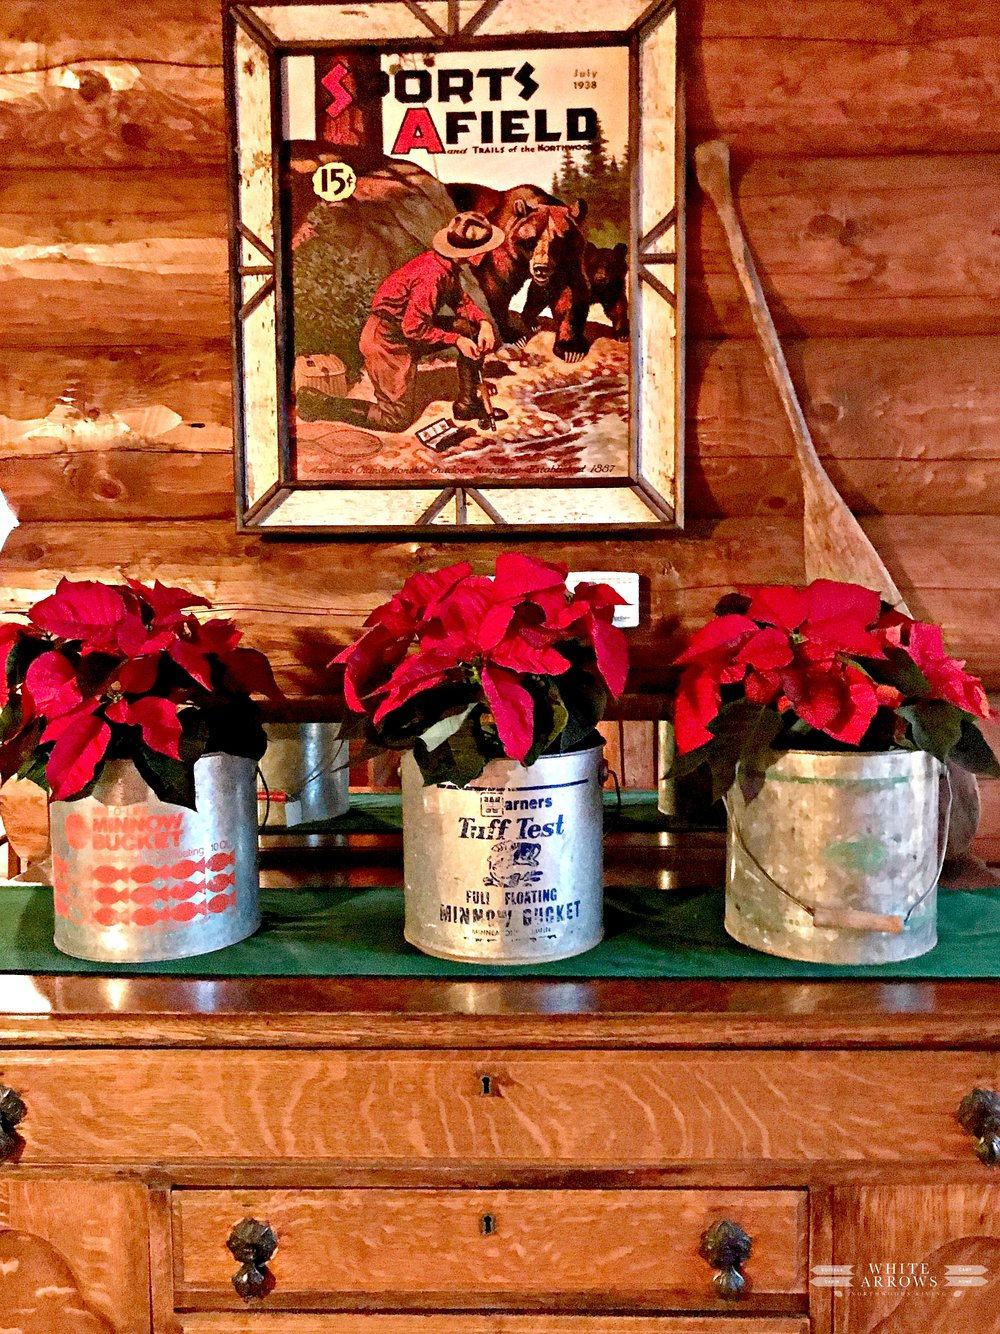 Old minnow buckets repurposed for poinsetta vases in a wooden cabin decoration